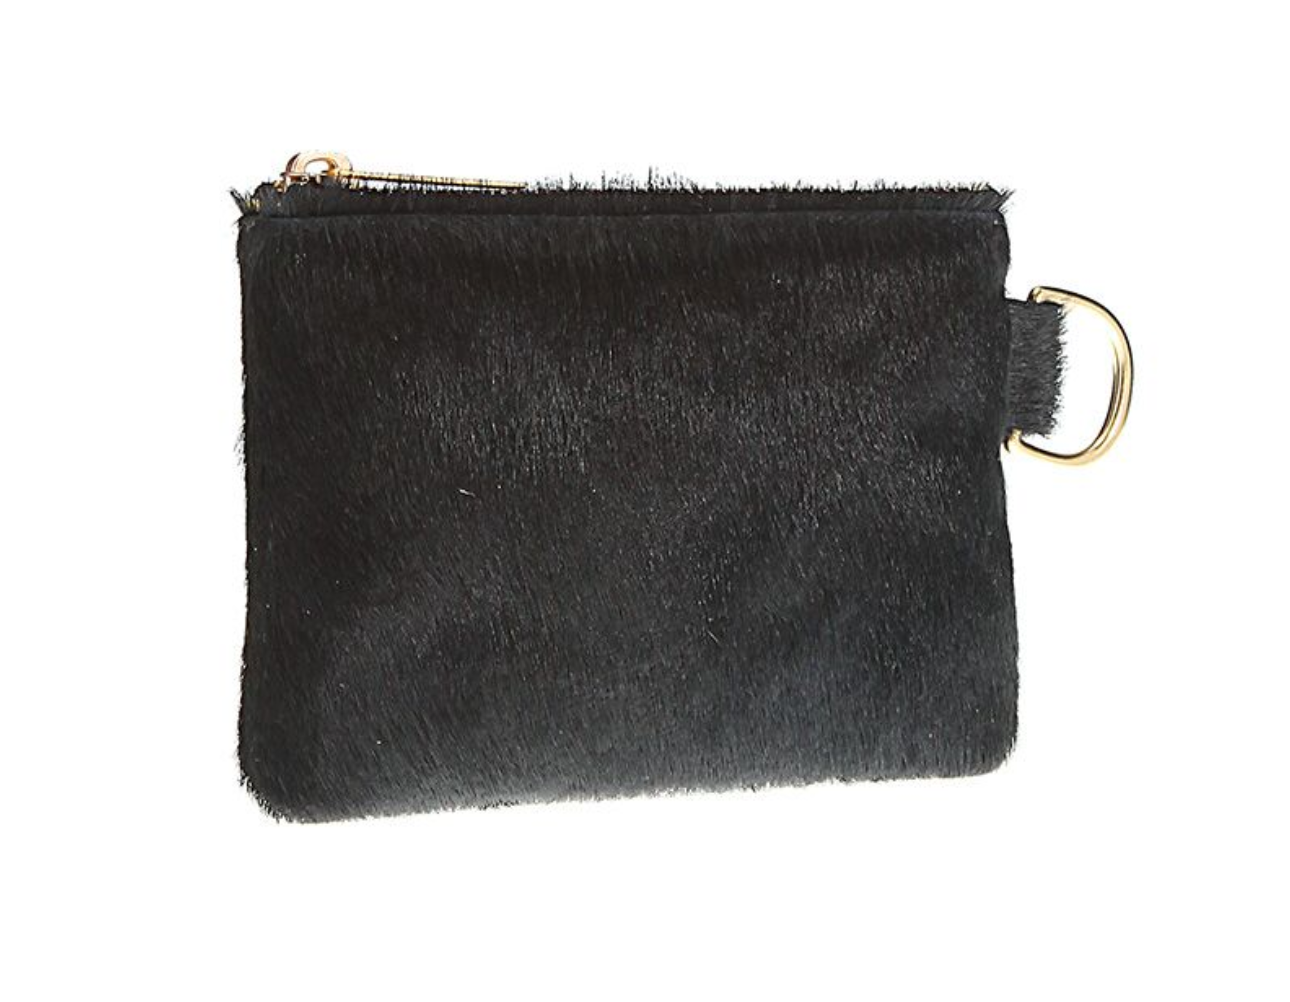 Zip Pouch in Midnight